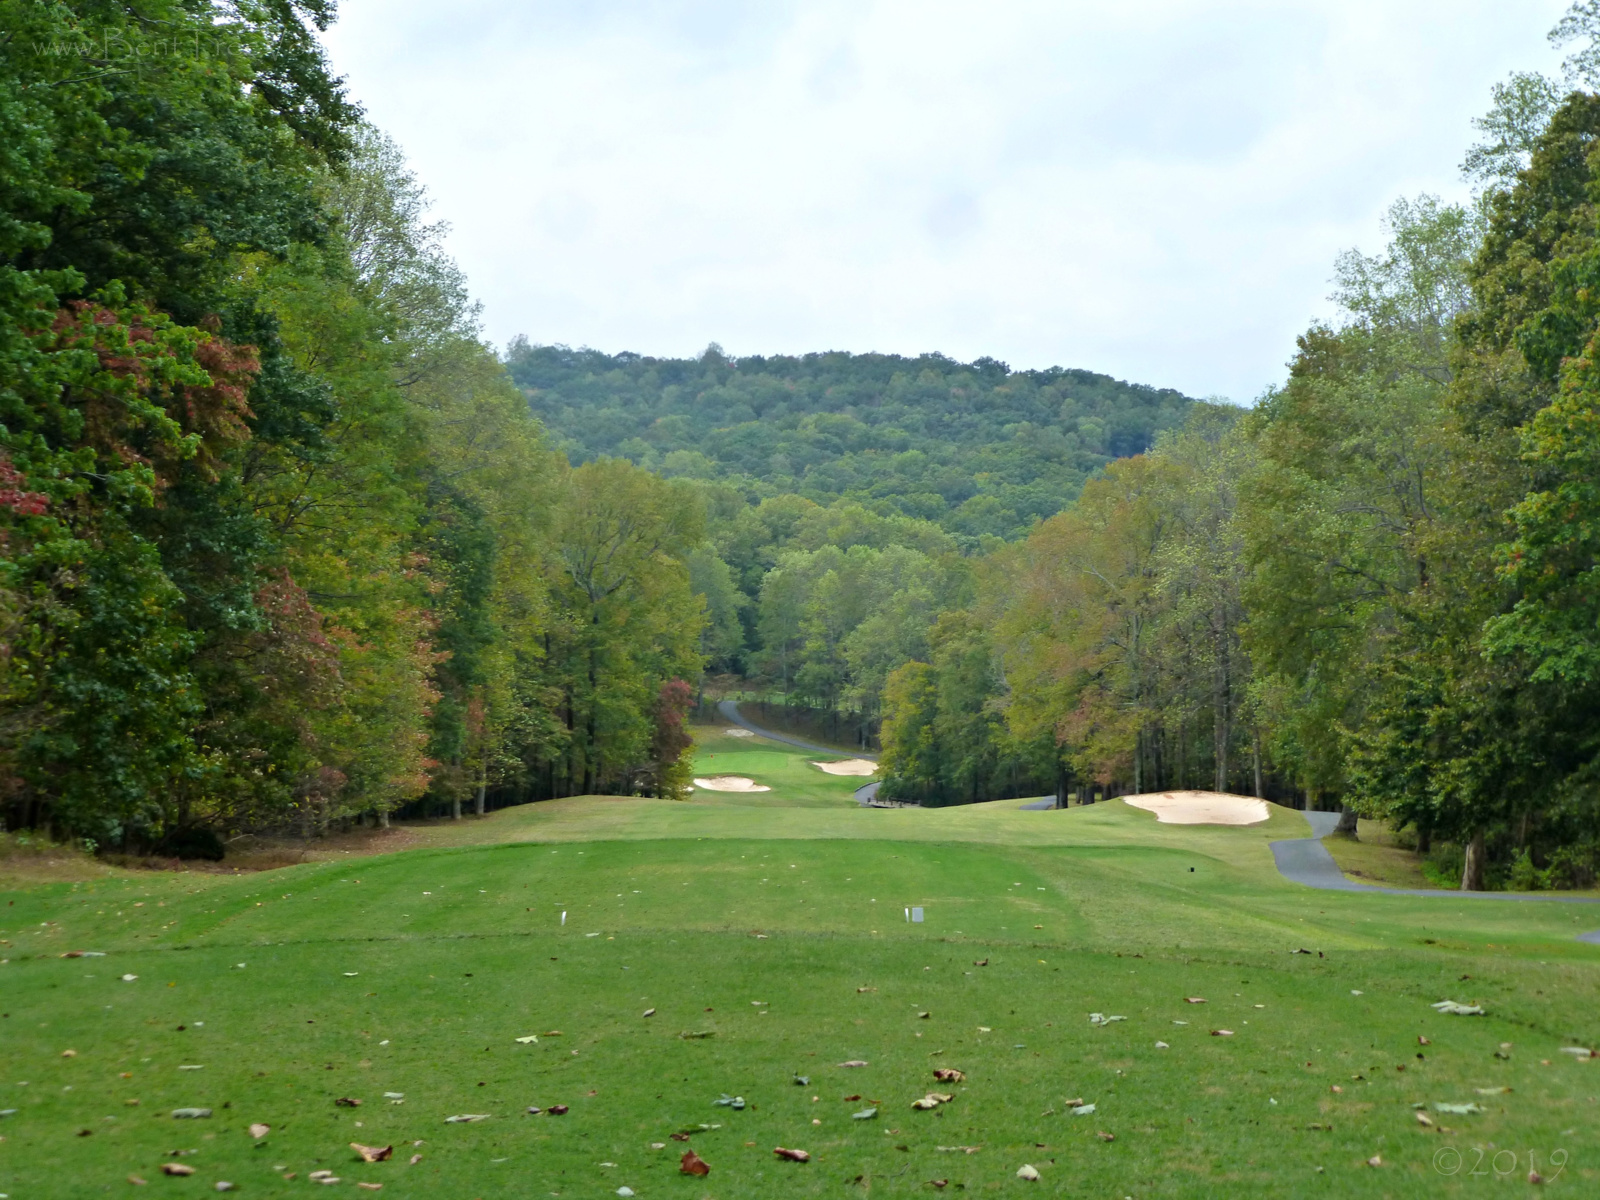 October 21, 2019 - Hole 14, Bent Tree Golf Club